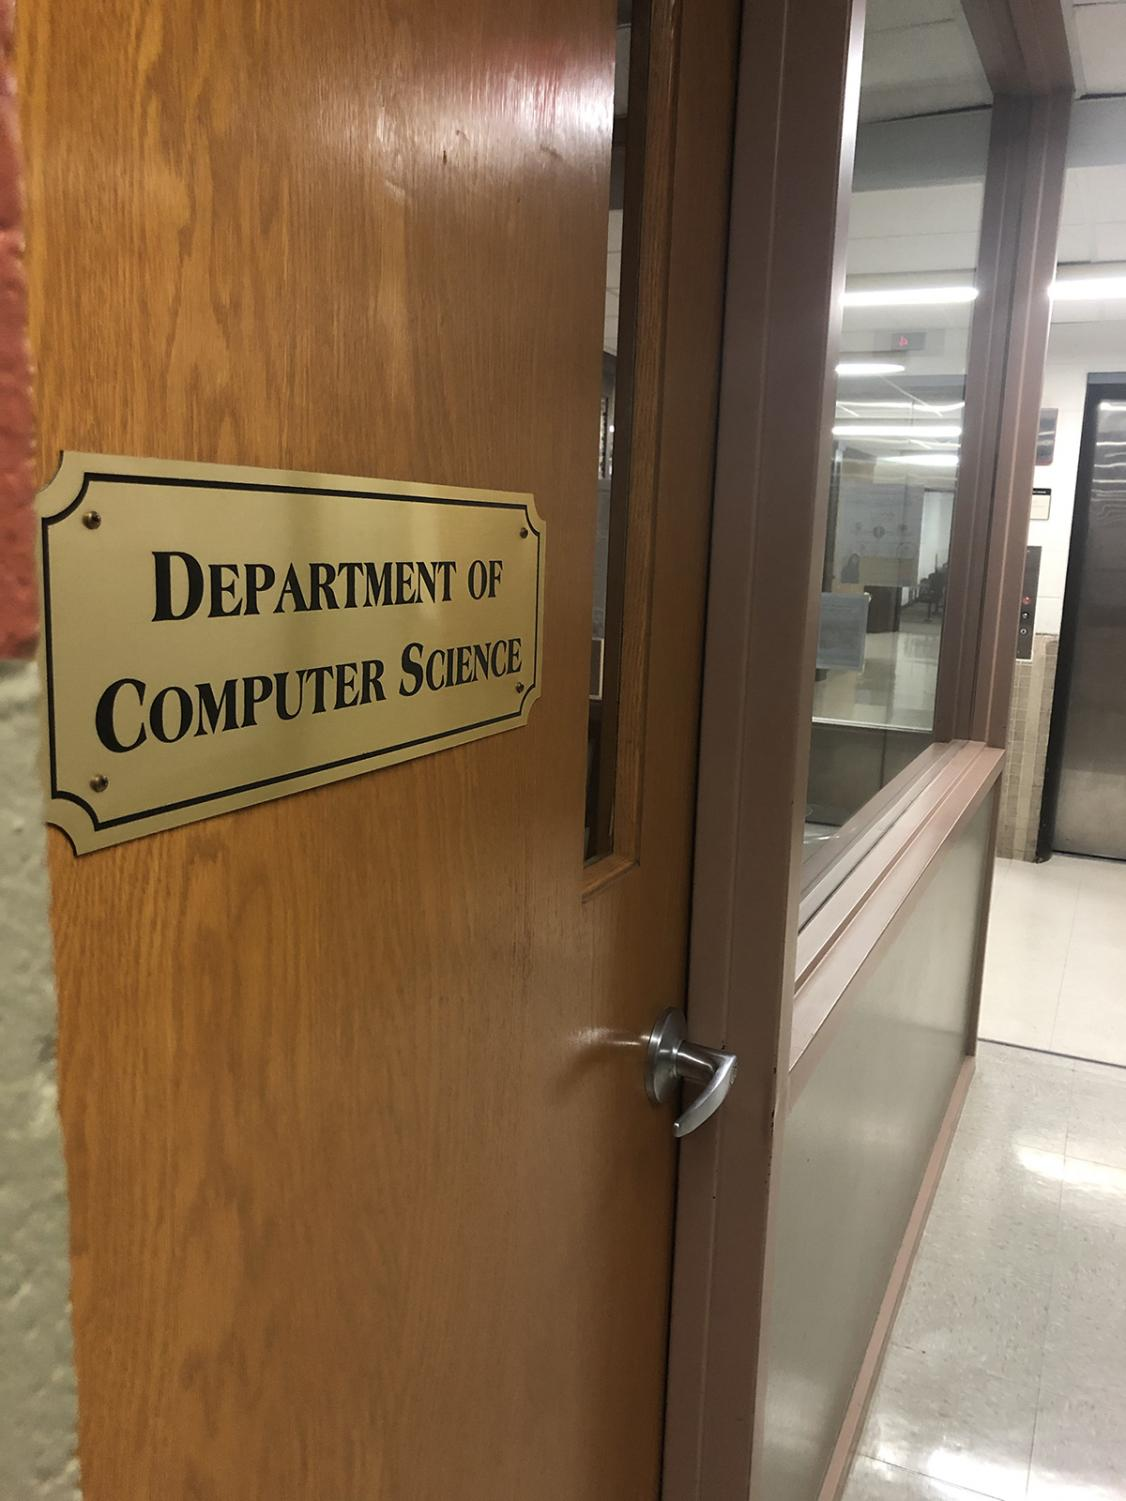 The computer science department at UW-Eau Claire is facing difficulties with its students and faculty.